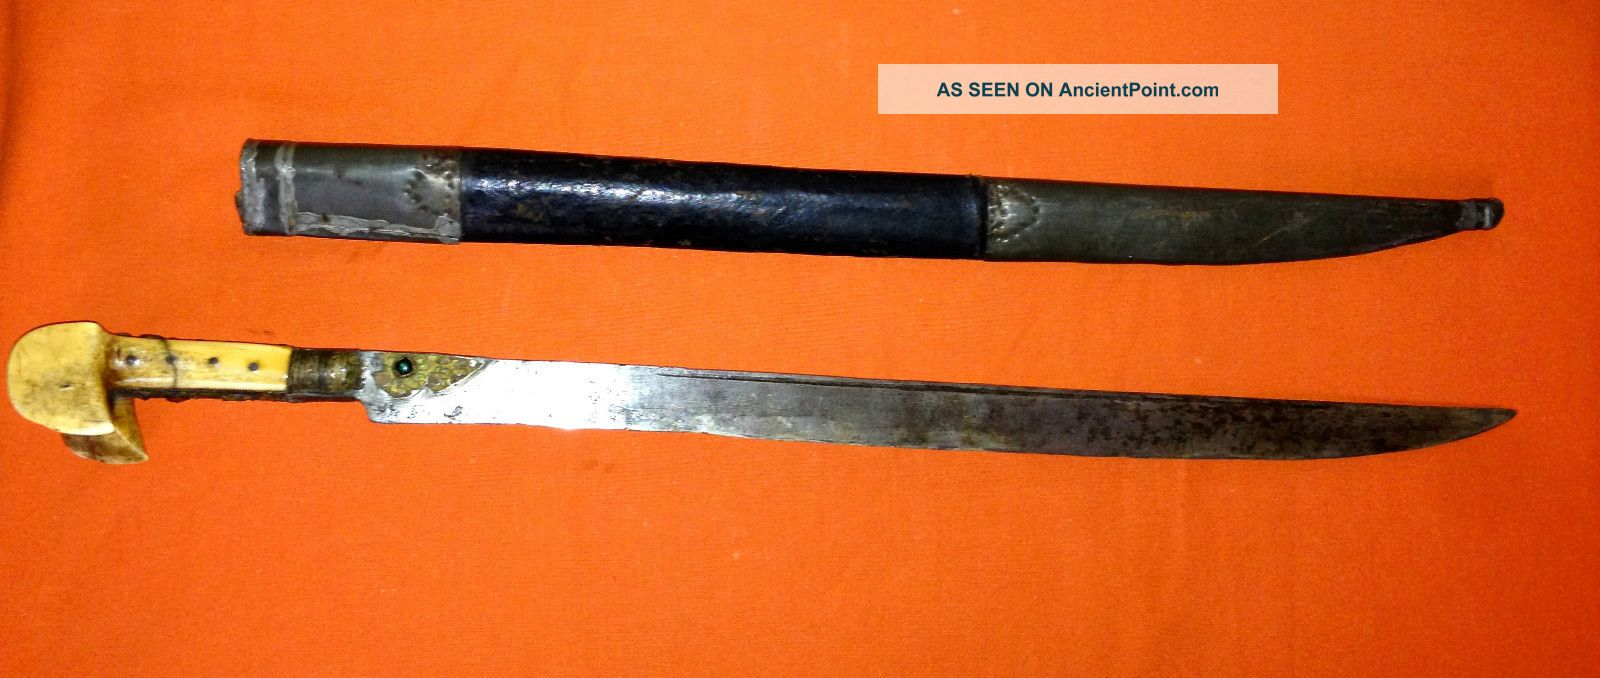 Ottoman Turkish Yatagan Yataghan Antique Islamic Sword Old Shamshir Persian Indo Middle East photo